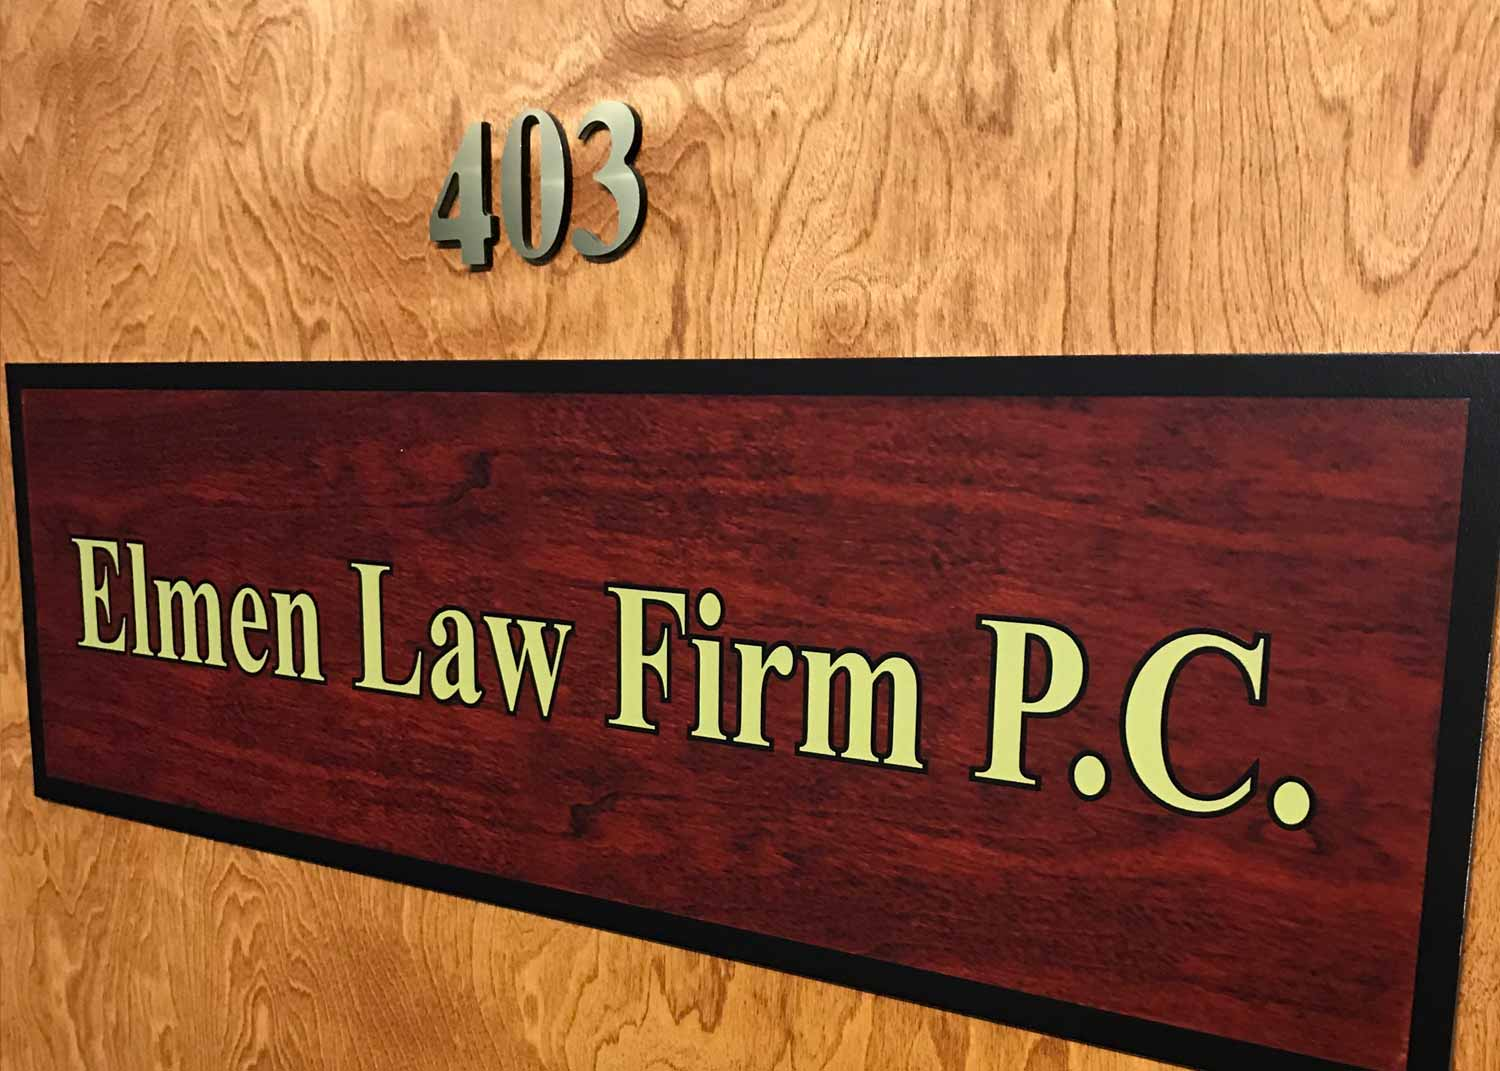 Door sign for Elmen Law Firm P.C.